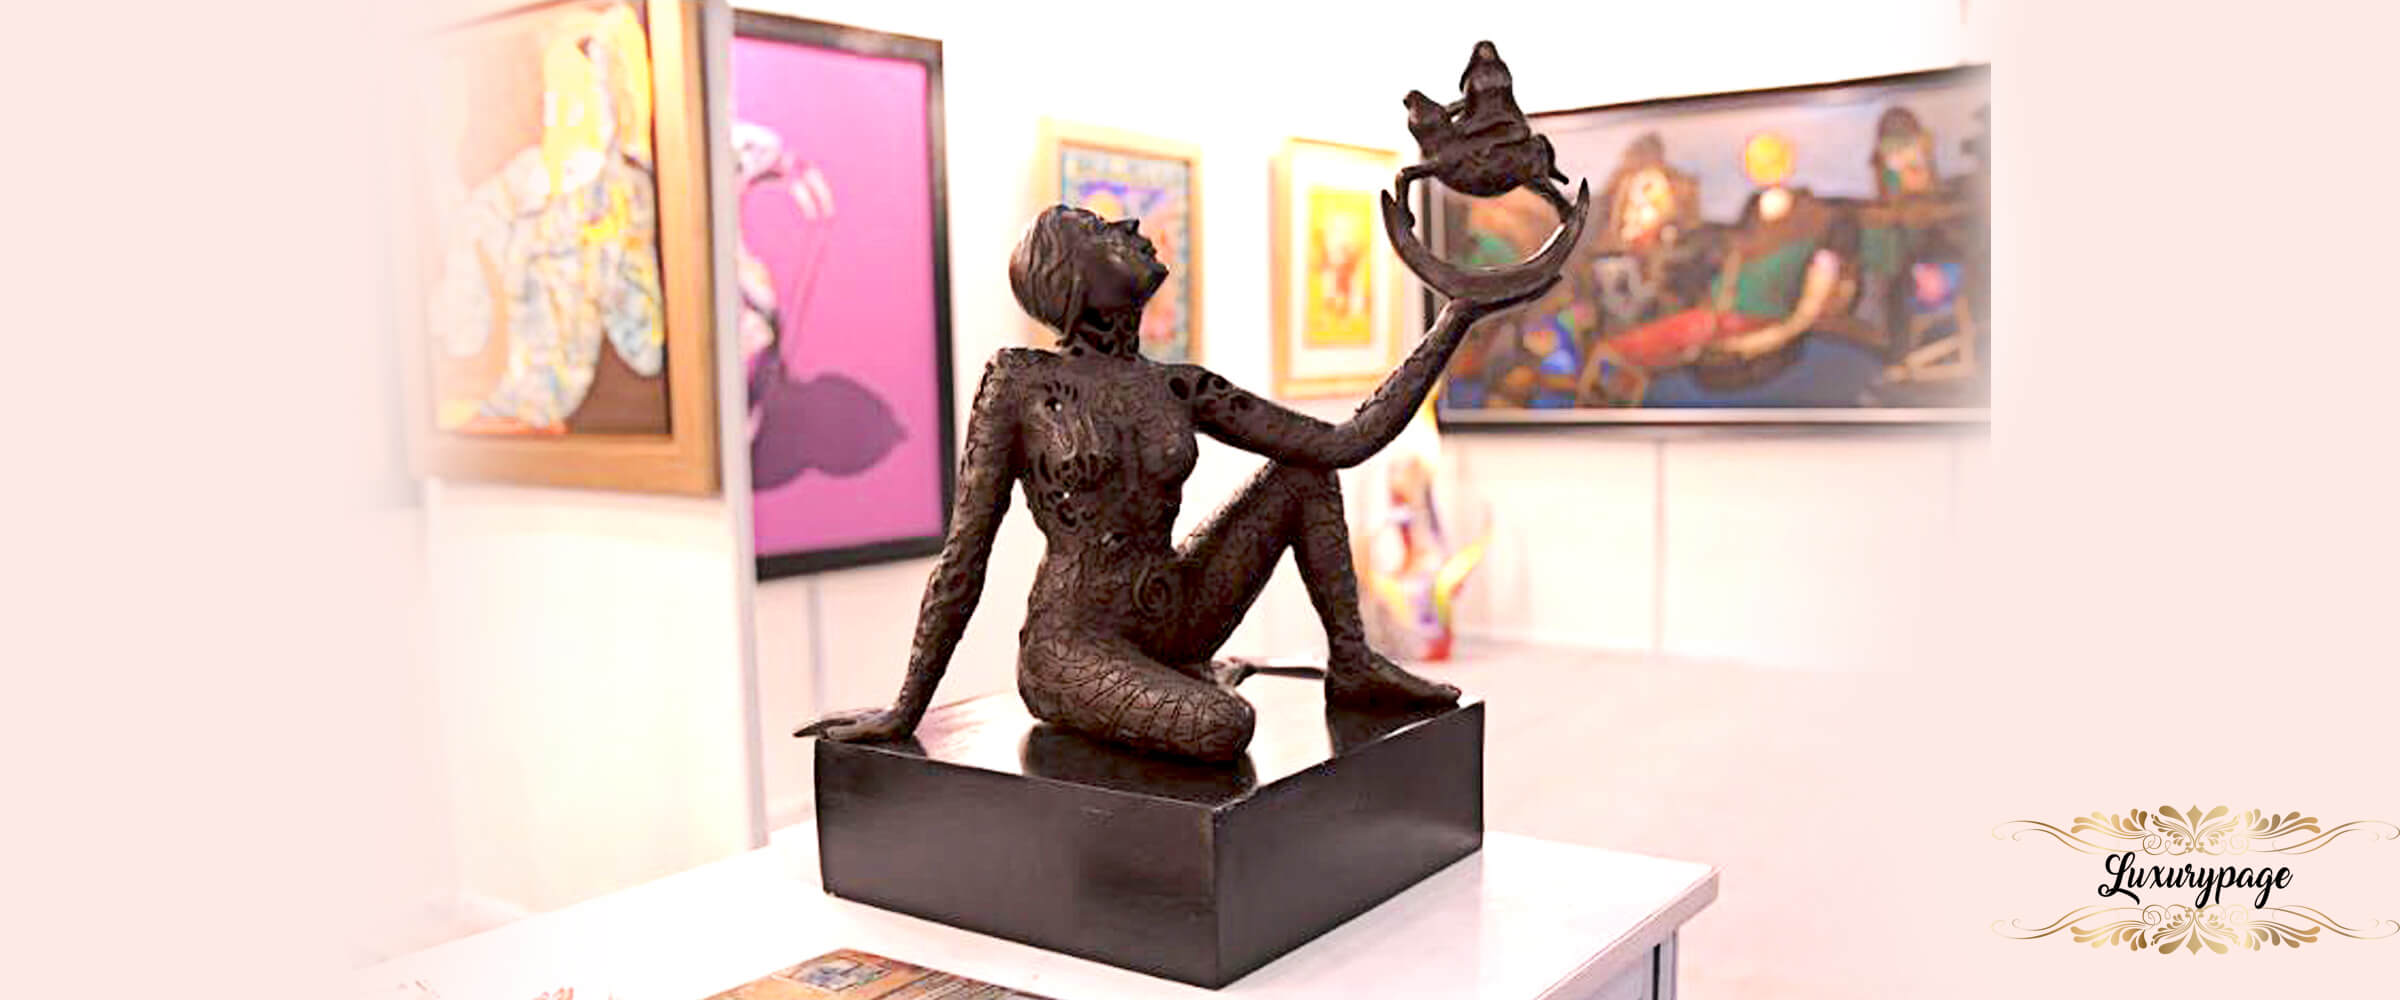 Indian Art Festival (IAF) - The Growth Trajectory of India Art Festival